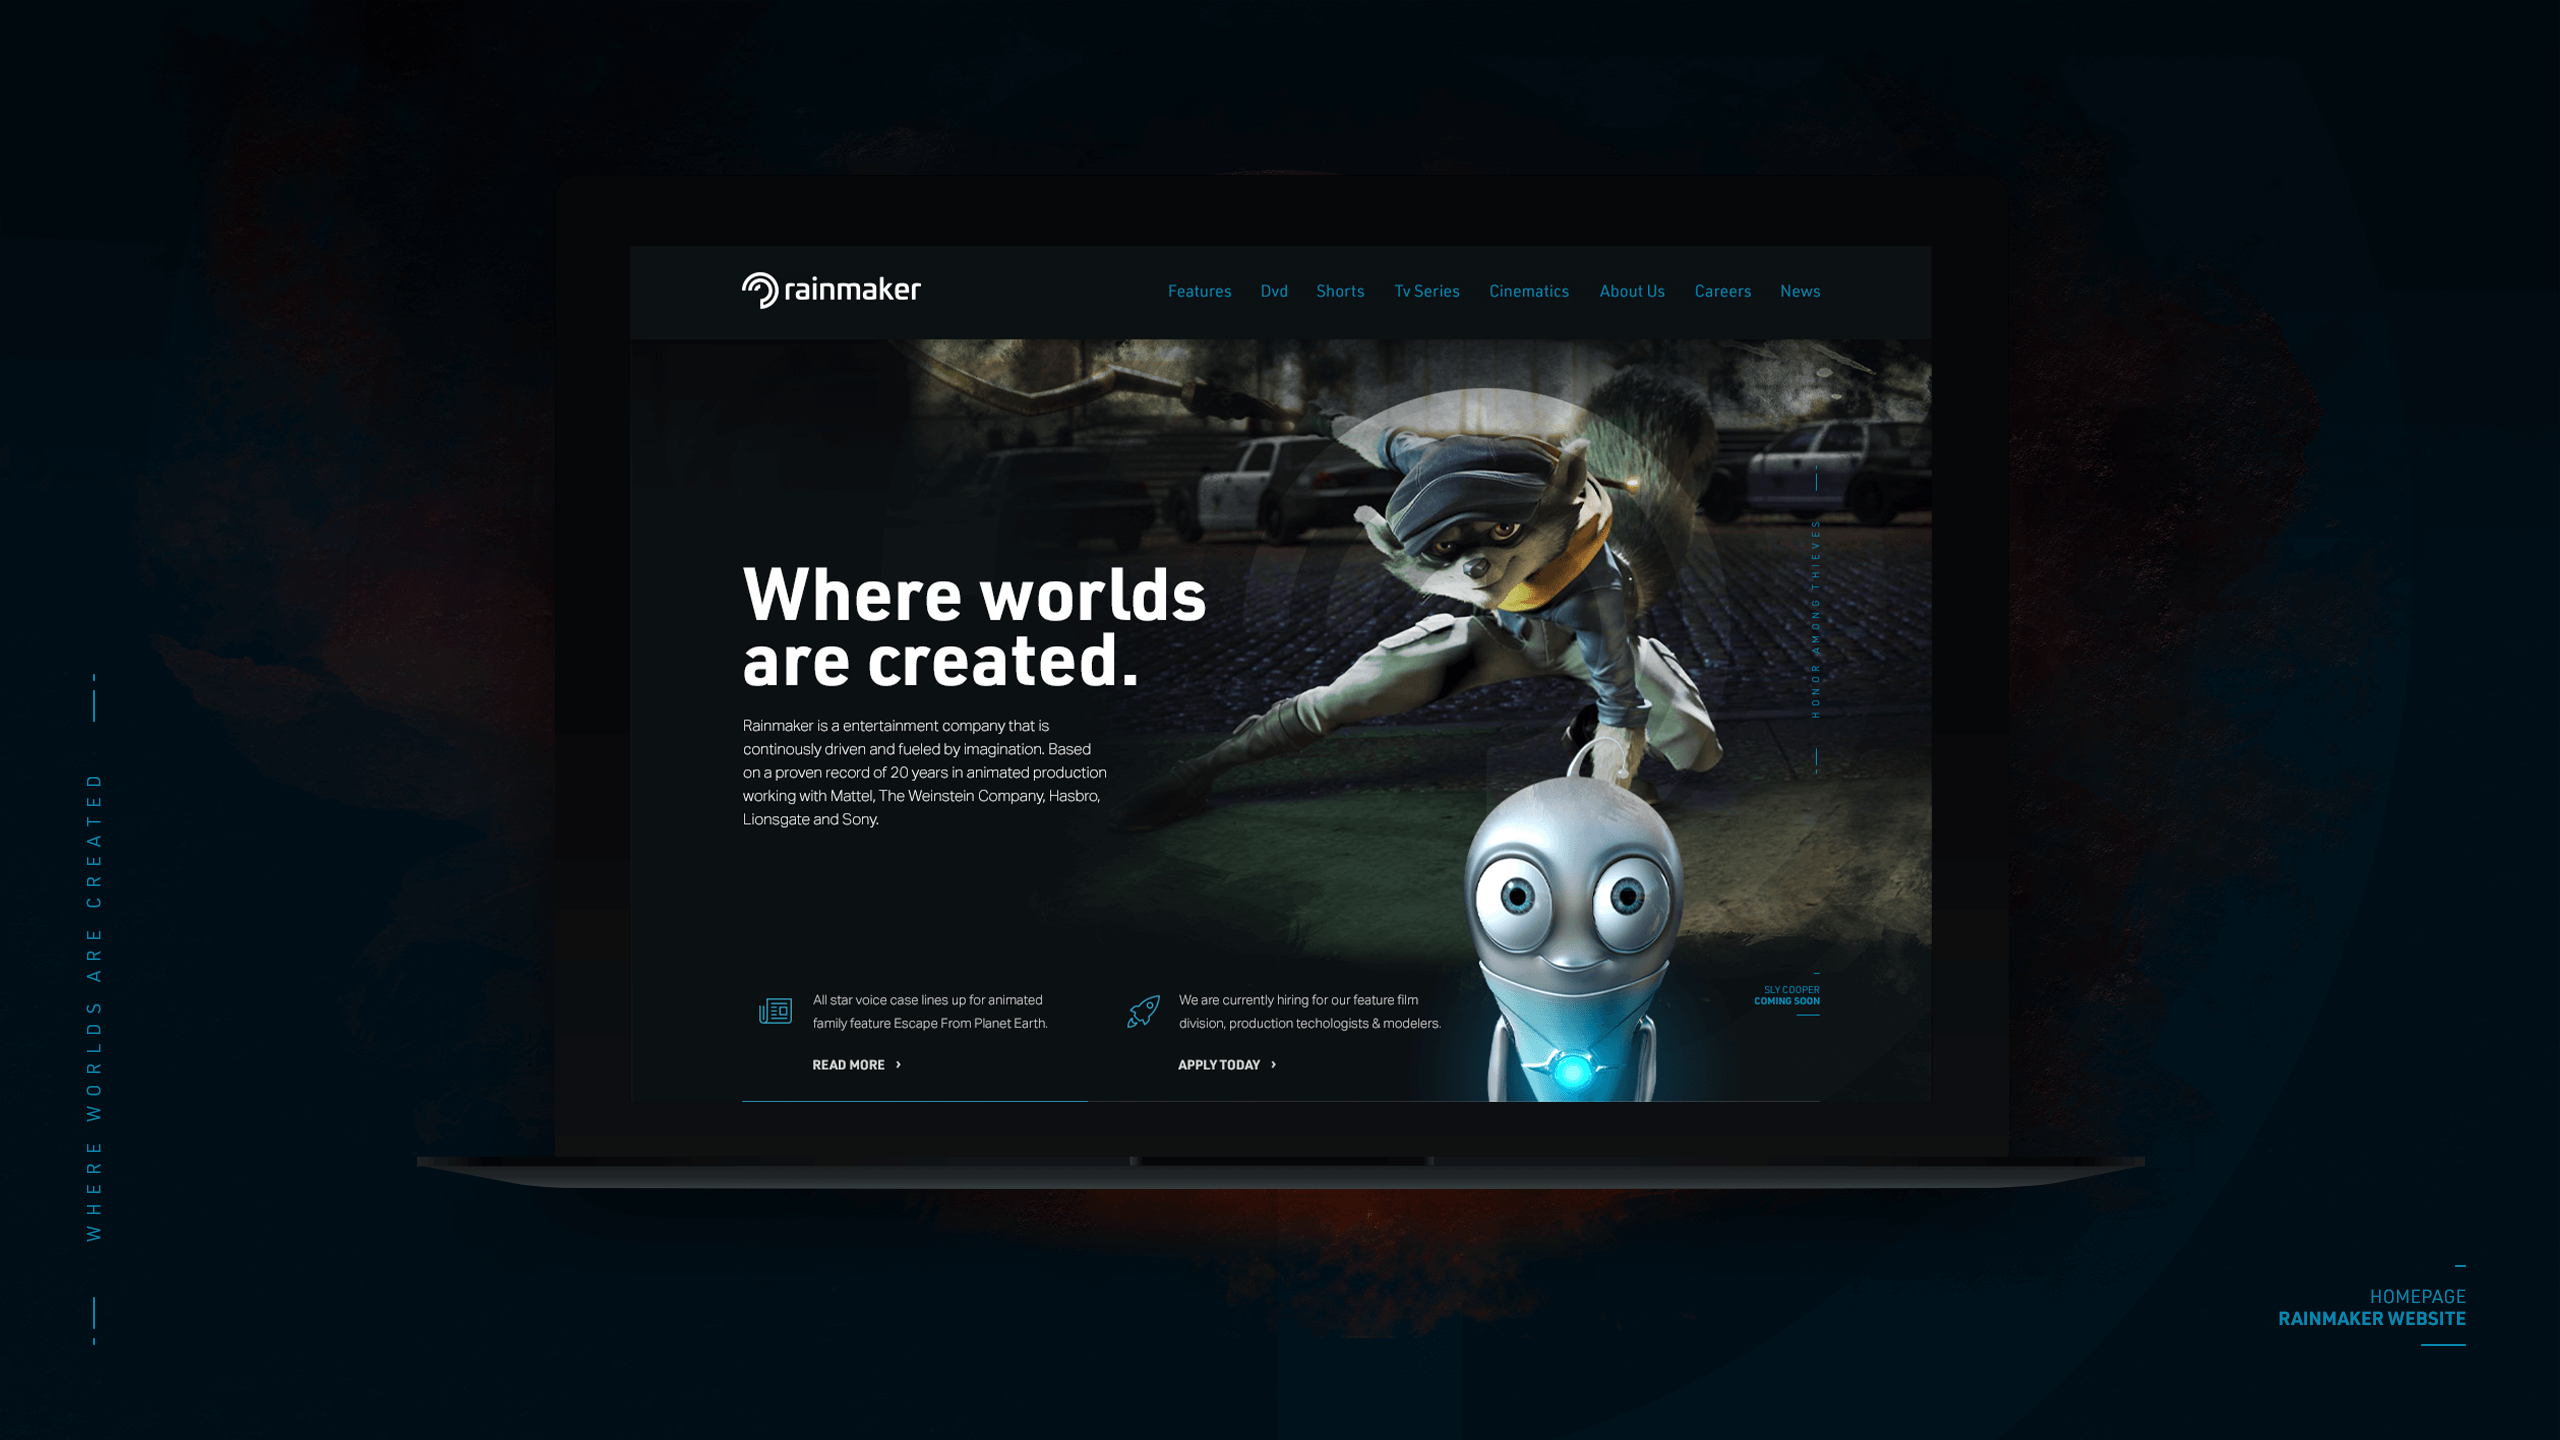 rainmaker-website-desktop-homepage